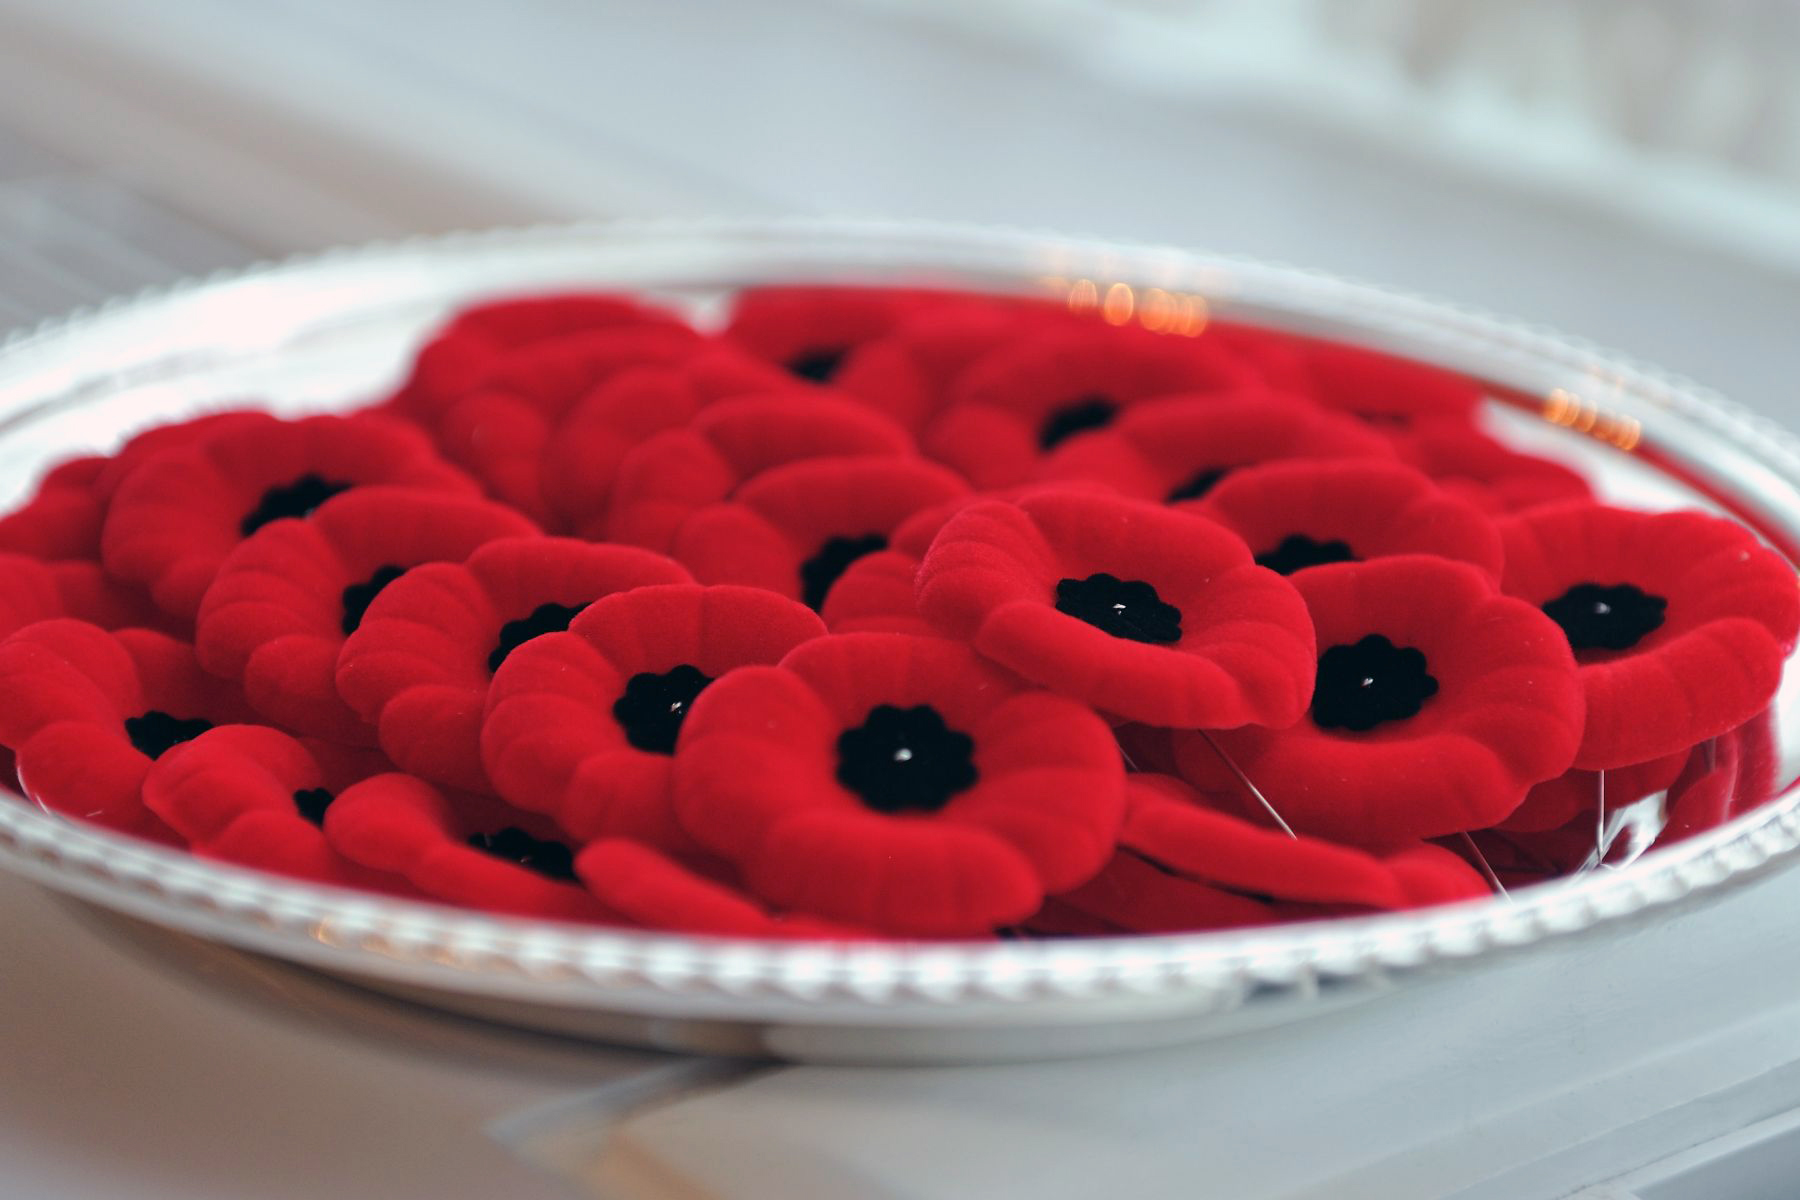 Poppies will be available to the general public beginning October 28, 2011.